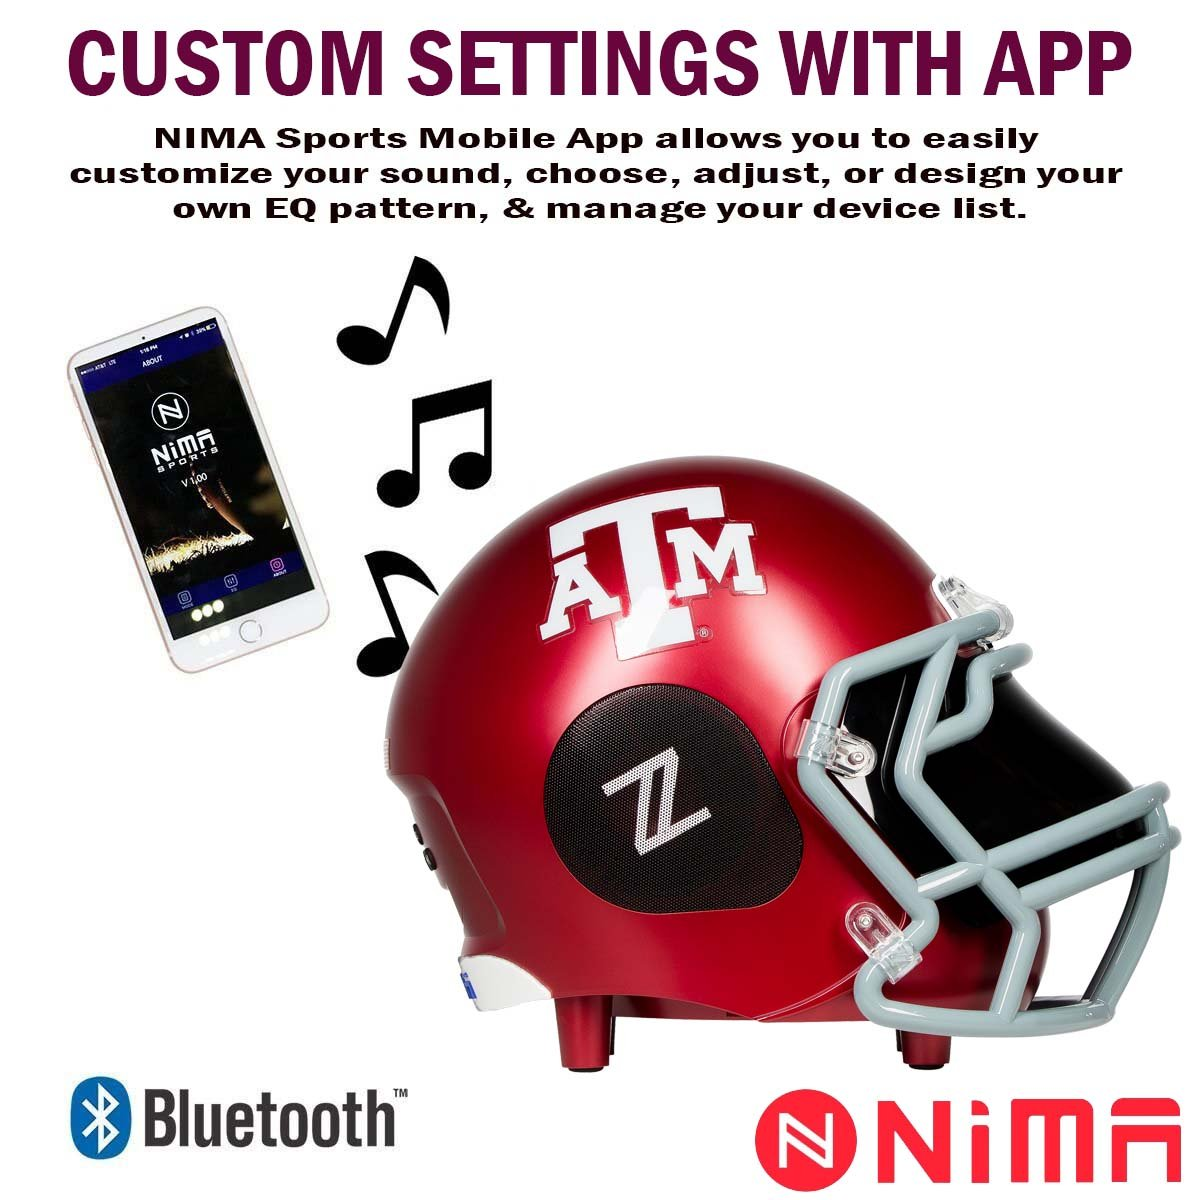 Arizona State Devils Small Portable Bluetooth Speaker Helmet 12-Hour Battery Life with Sub-Woofer and 360-Degree HD Audio 5-Inch NCAA Officially Licensed 12 watts